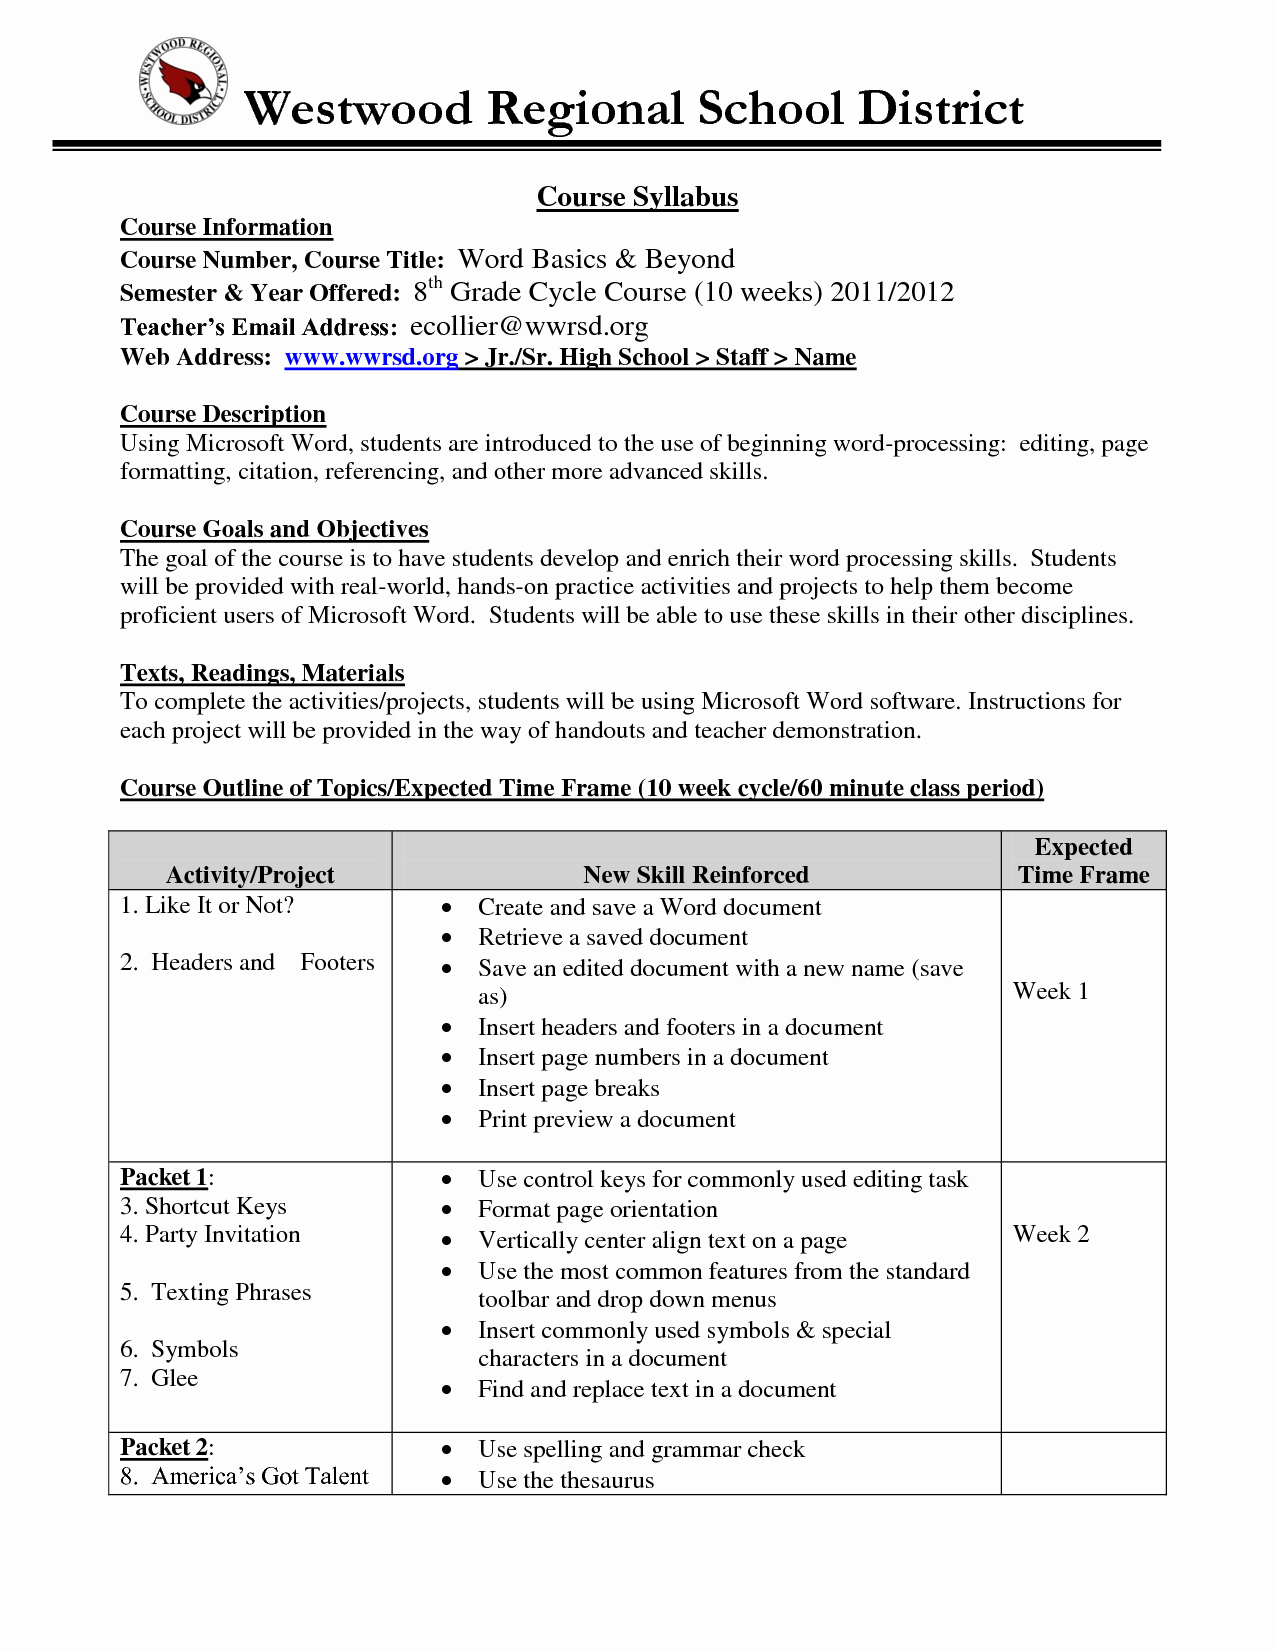 Training Outline Template Word Inspirational 10 Best Of Syllabus Template Word Course Syllabus